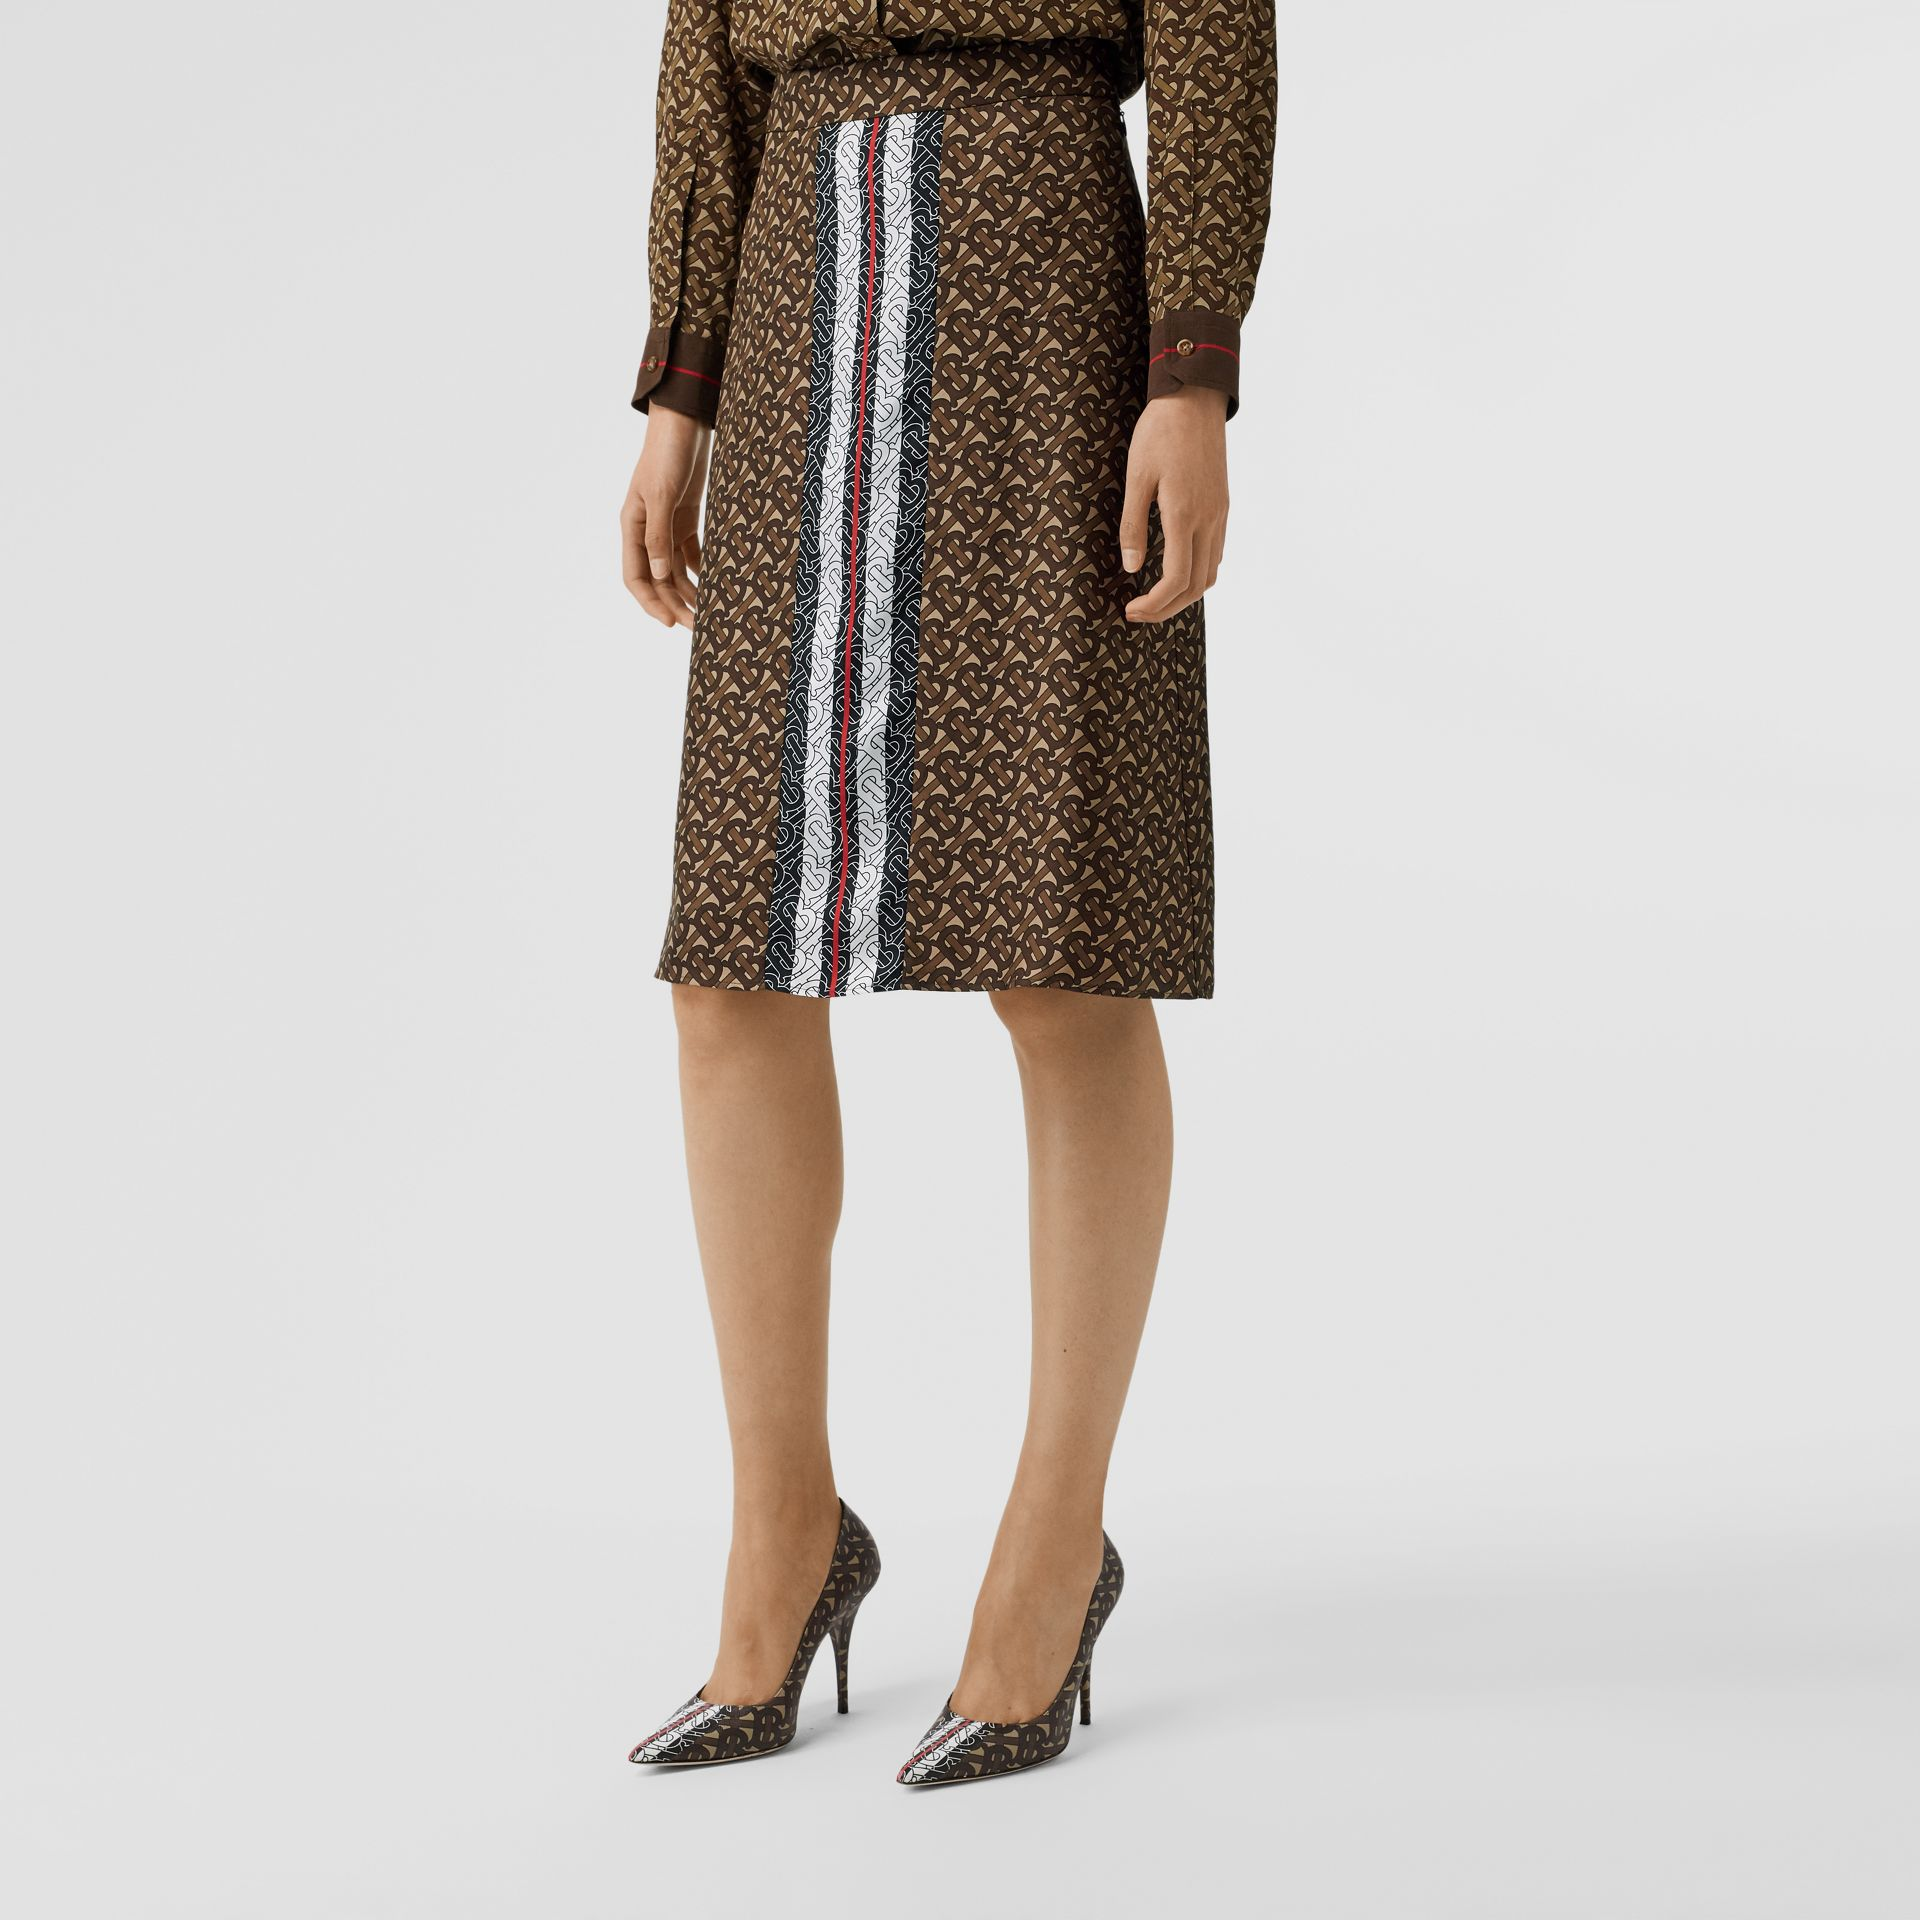 Monogram Stripe Print Silk Skirt in Bridle Brown - Women | Burberry United States - gallery image 4